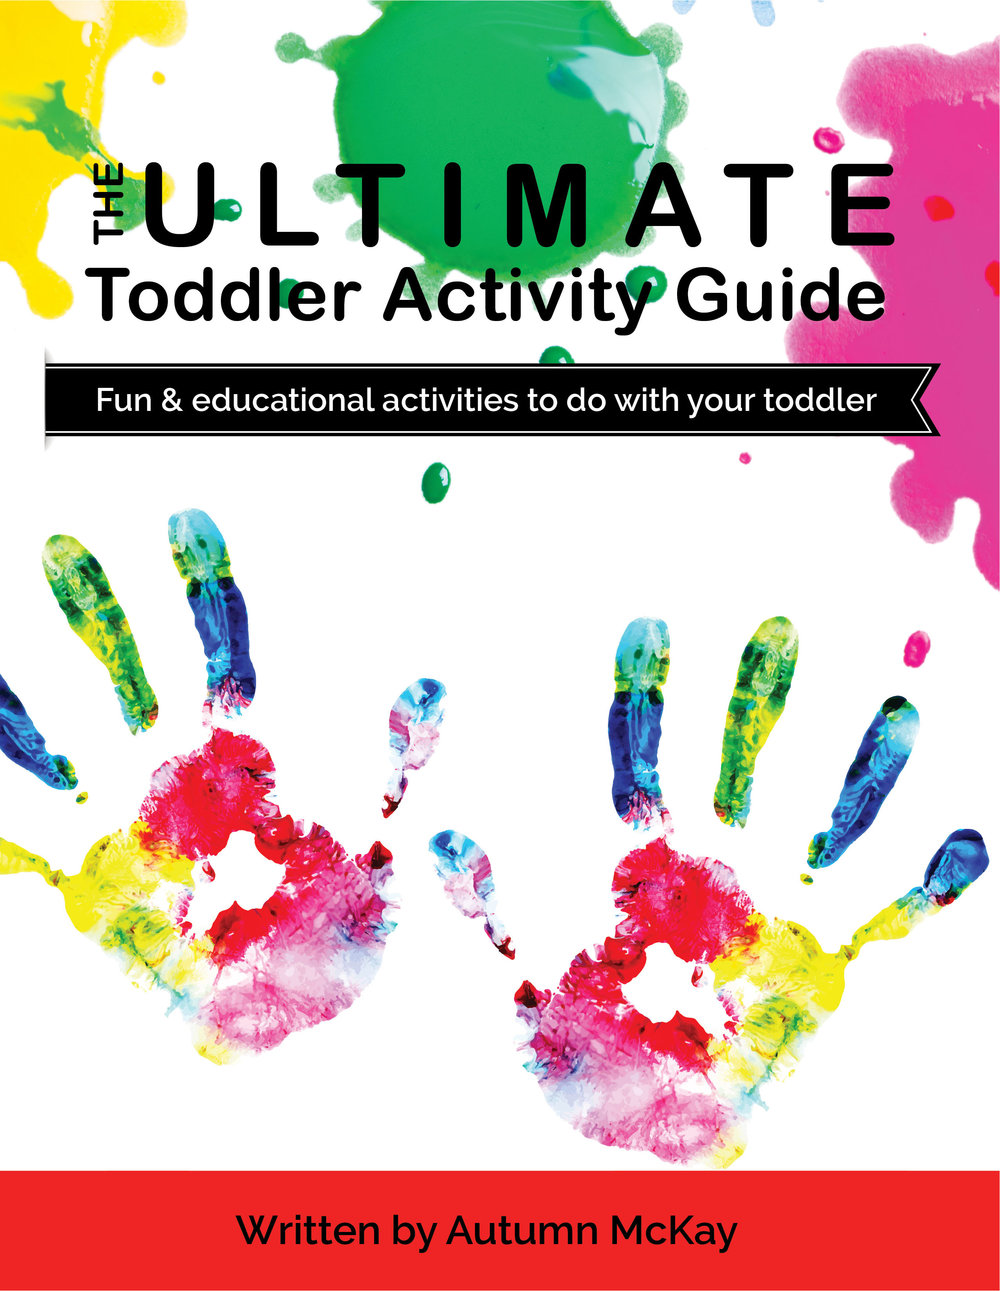 The Ultimate Toddler Activity Guide 2D cover.jpg